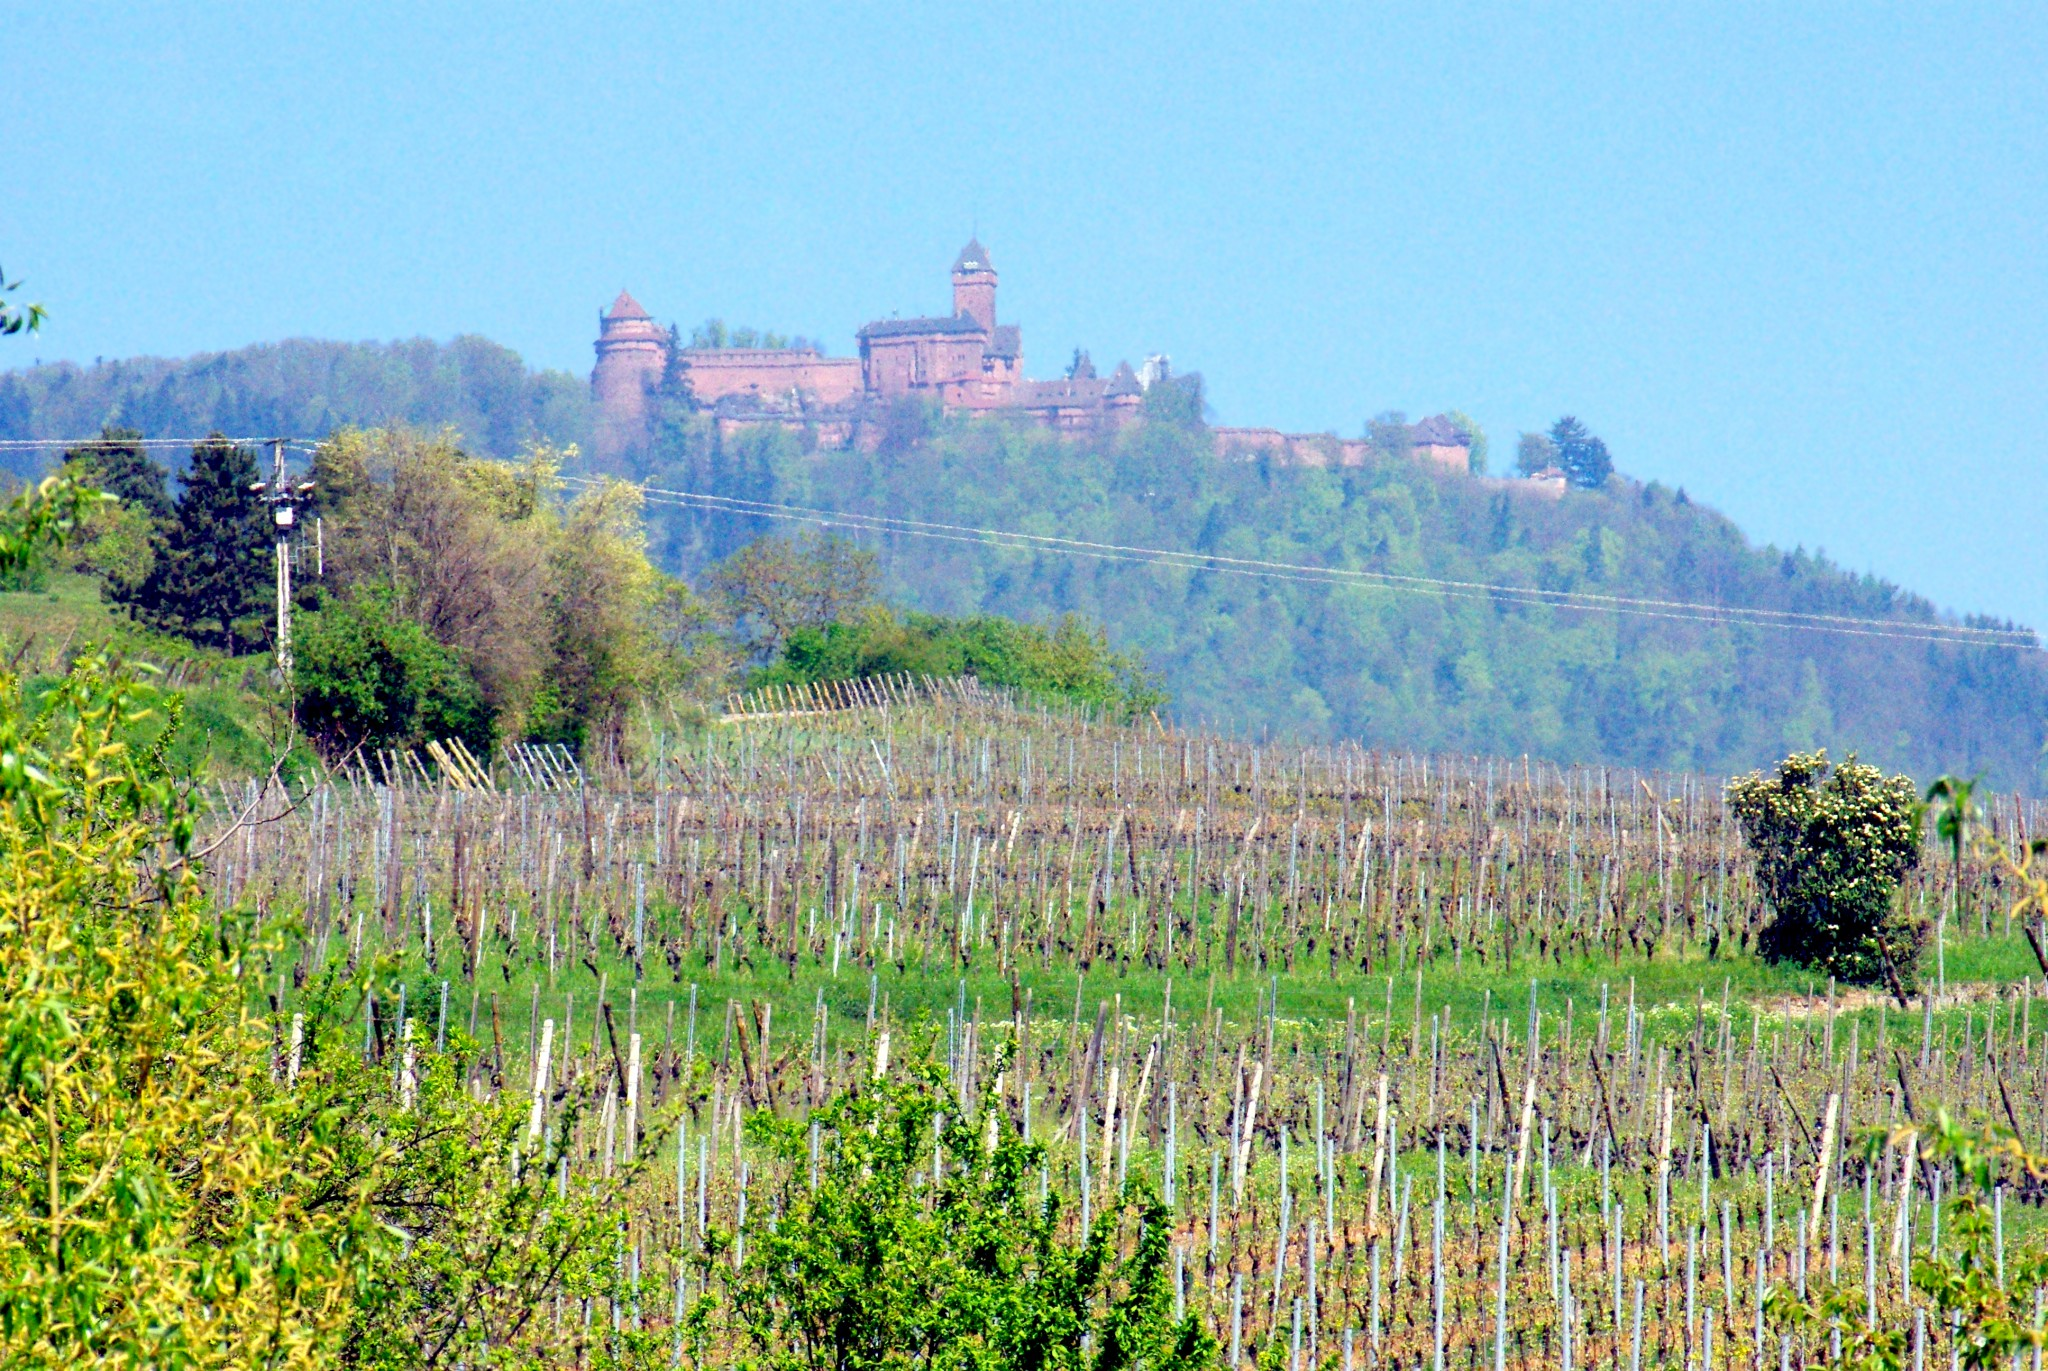 The Haut-Kœnigsbourg Castle seen from the vineyards of Bergheim © French Moments